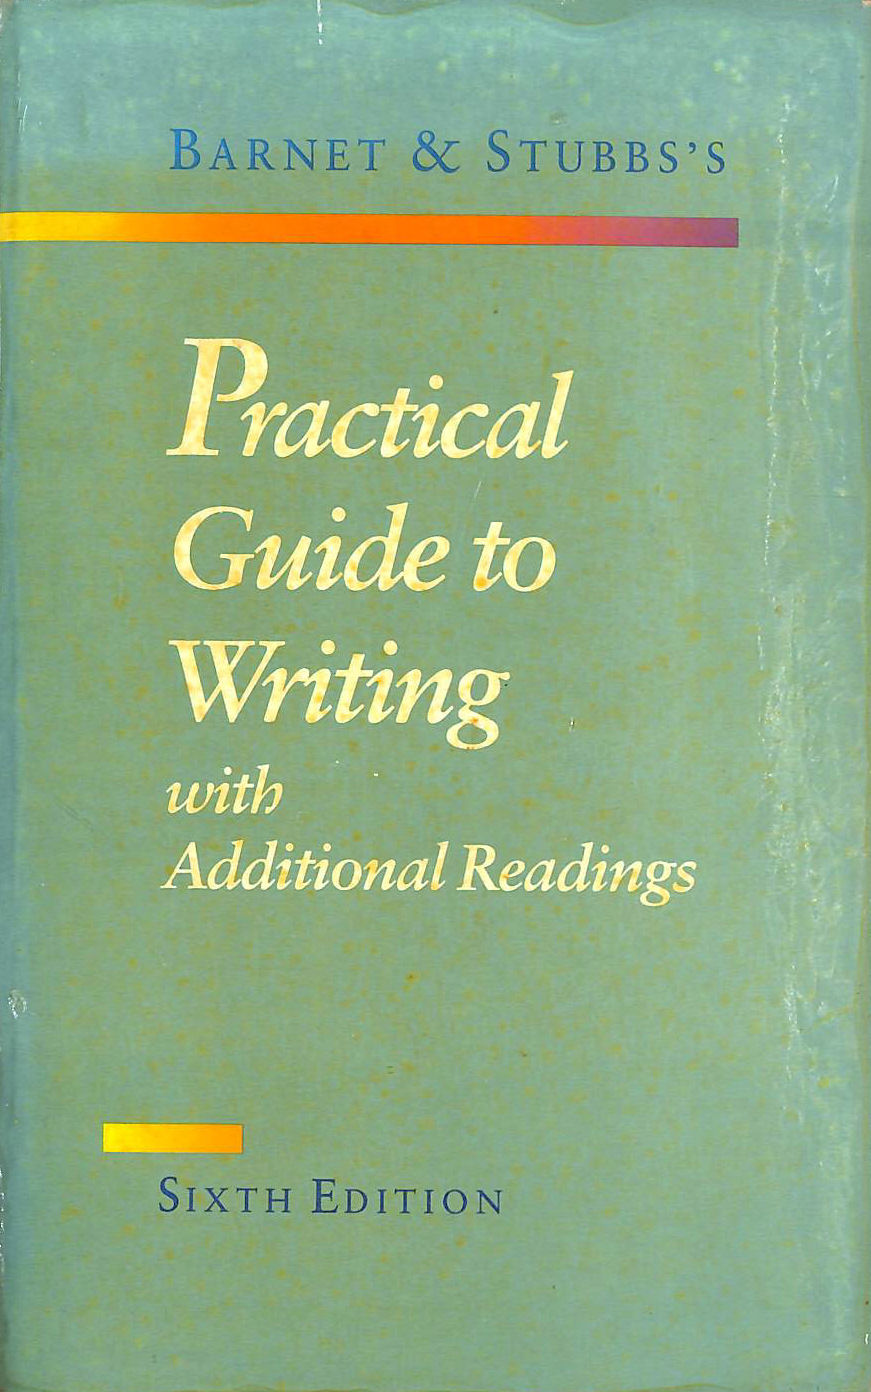 Image for Practical Guide to Writing: with Additional Readings